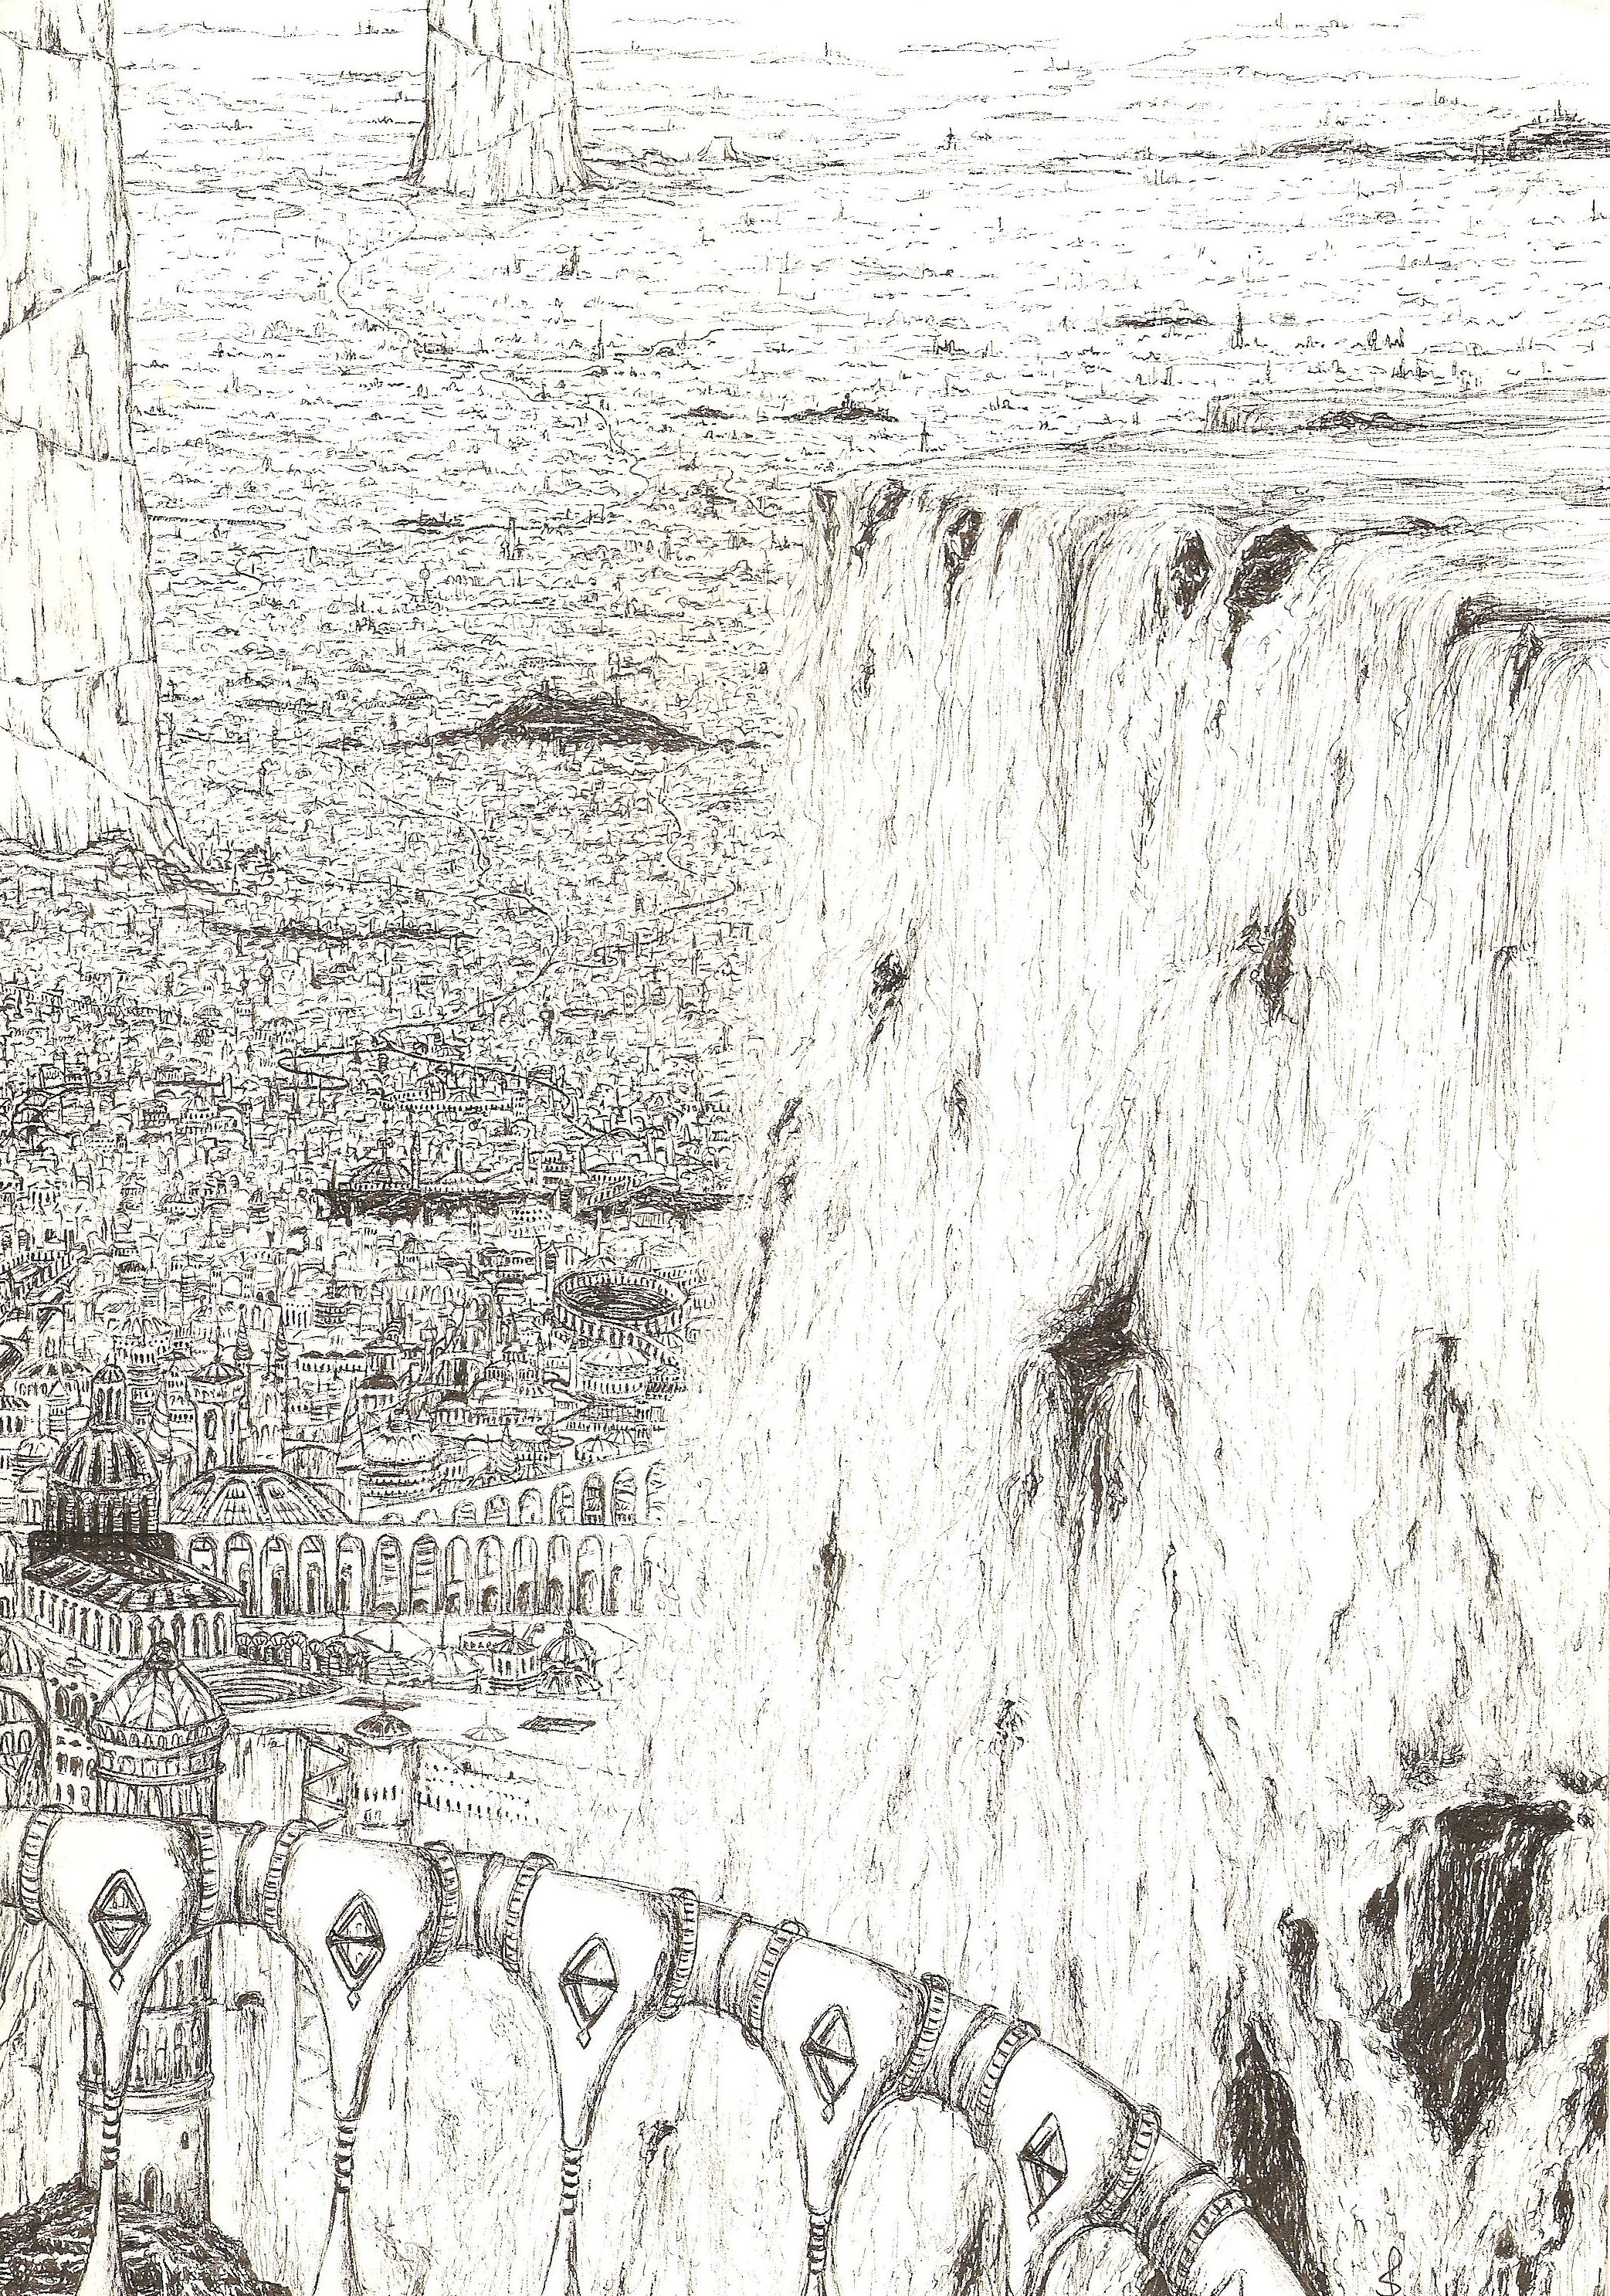 Kallorm, 'City of Light', a vast subteranean metropolis beneath the Congolese jungles. Largest and most ancient of all the Dworllian realms.